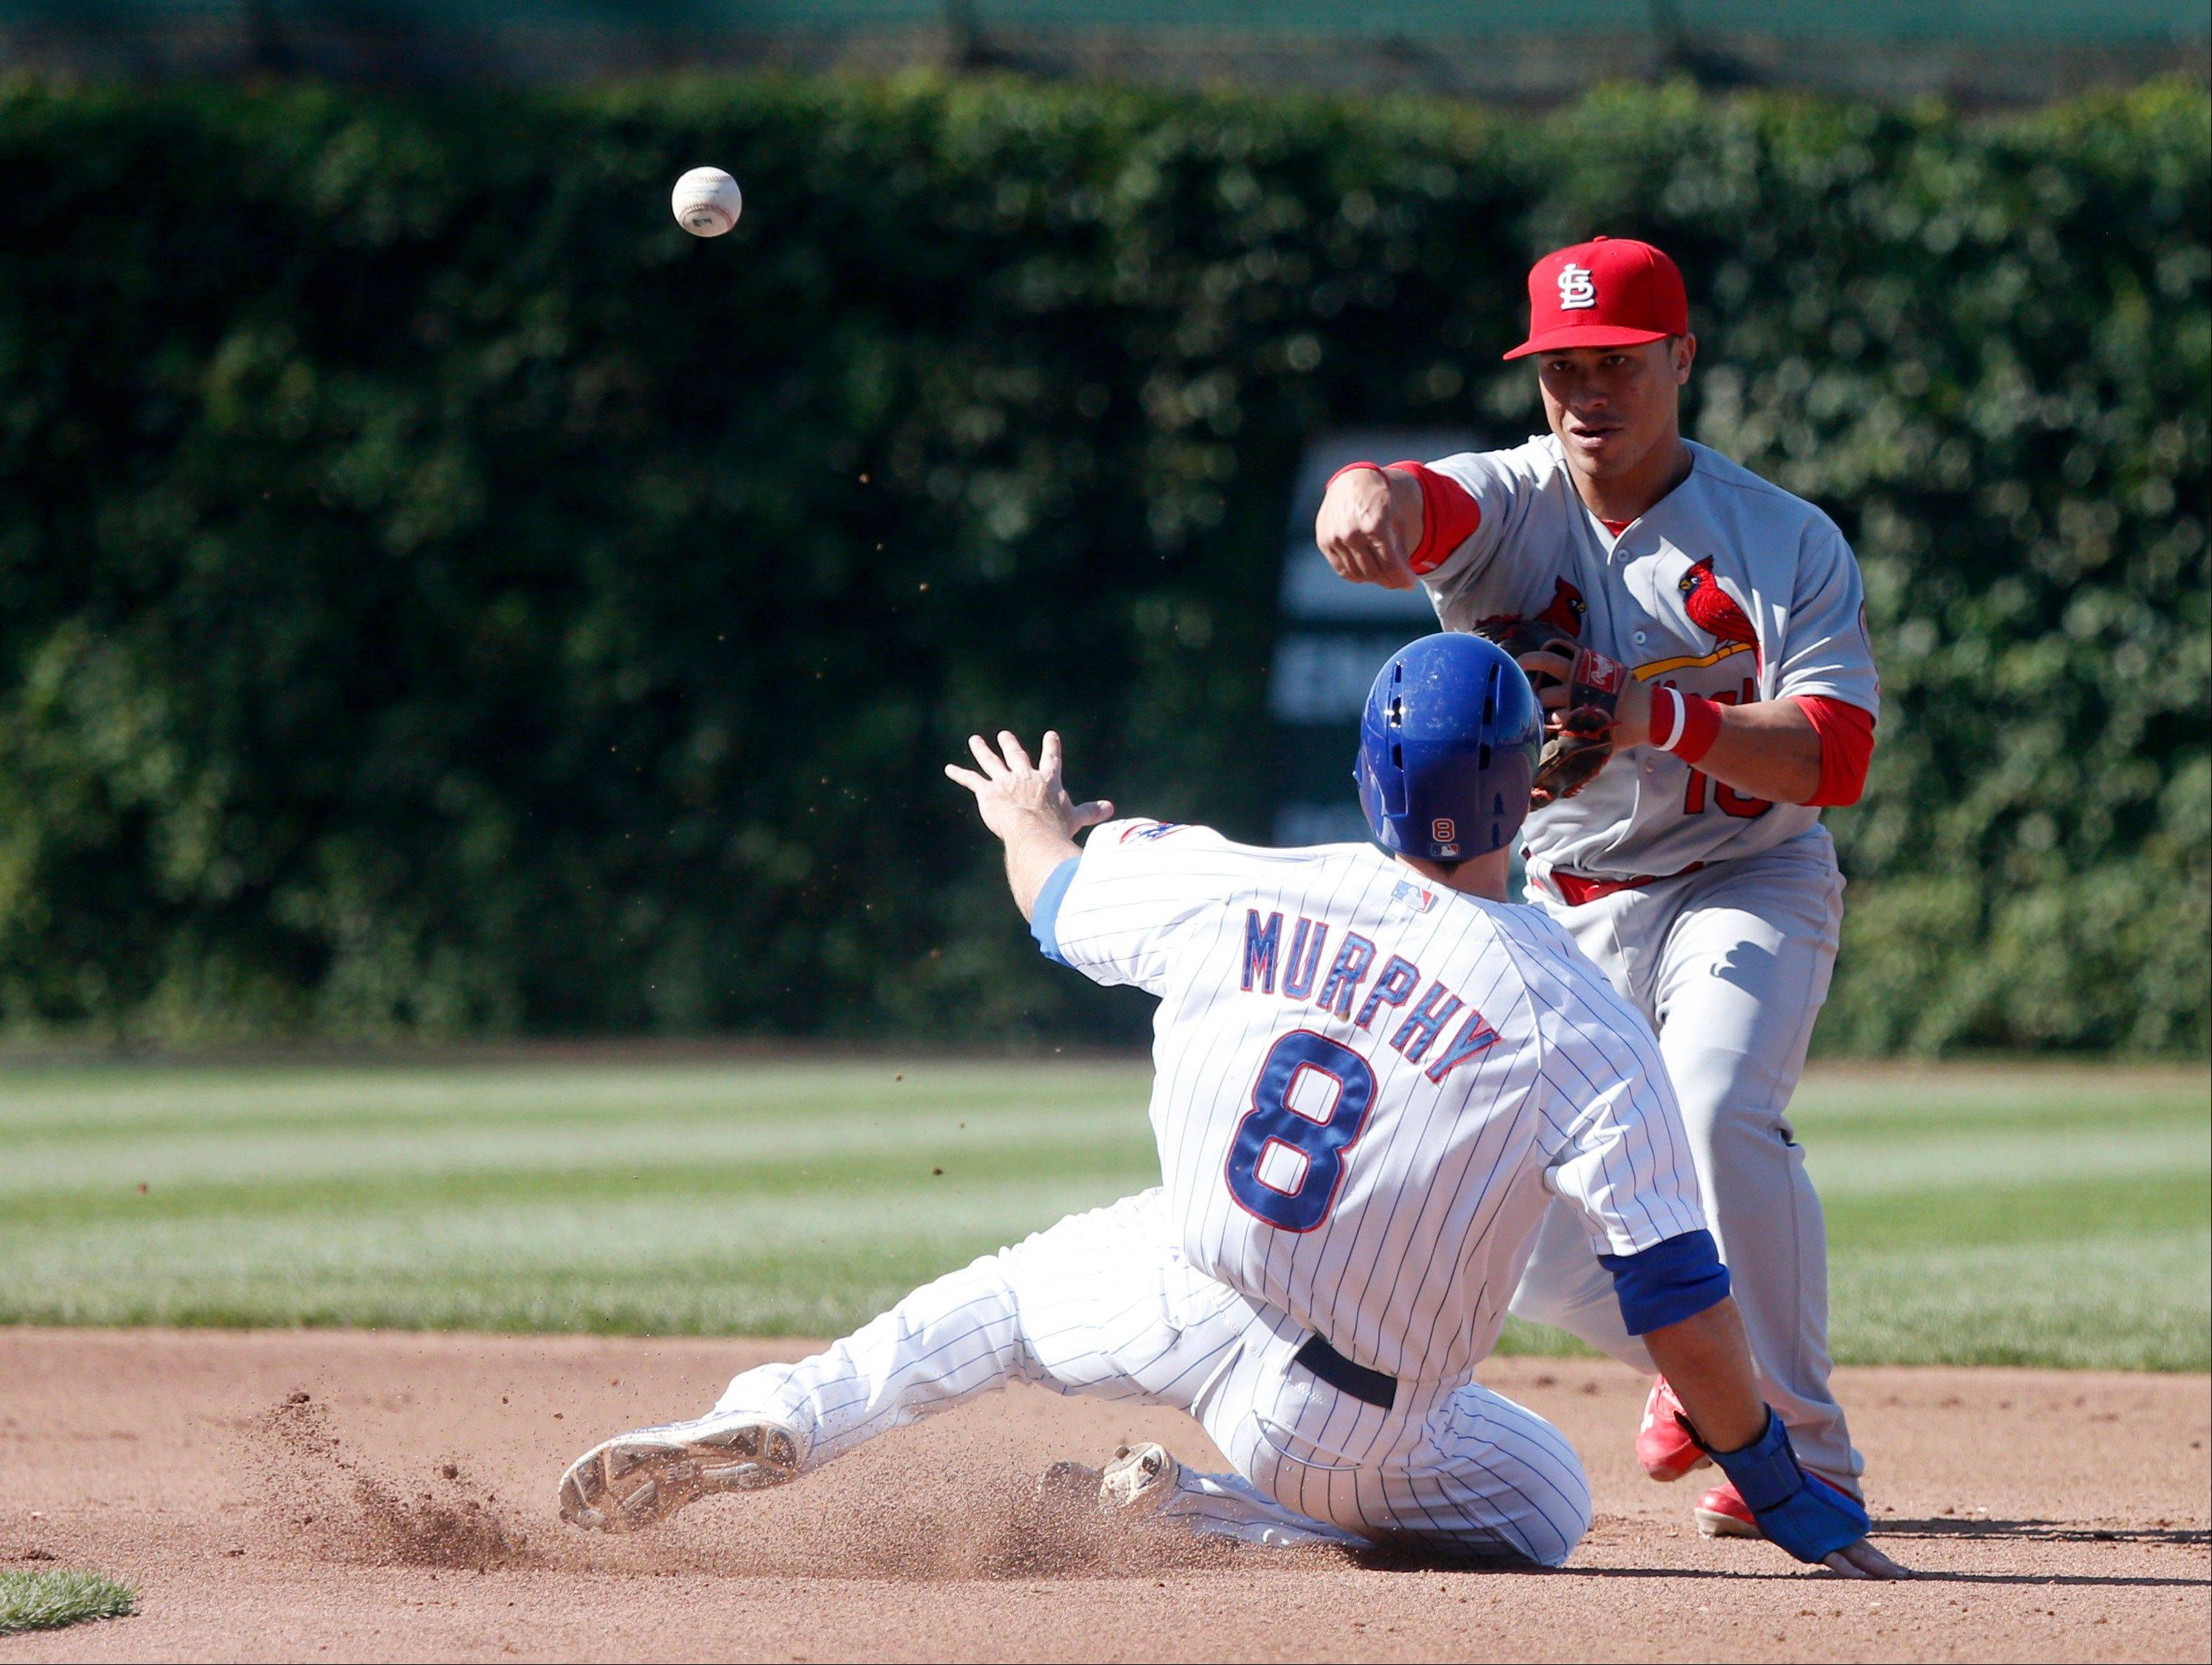 St. Louis Cardinals second baseman Kolten Wong, right, turns the double play forcing out Chicago Cubs' Donnie Murphy (8) at second and getting Starlin Castro at first during the fourth inning of a baseball game on Friday, Aug. 16, 2013, in Chicago.